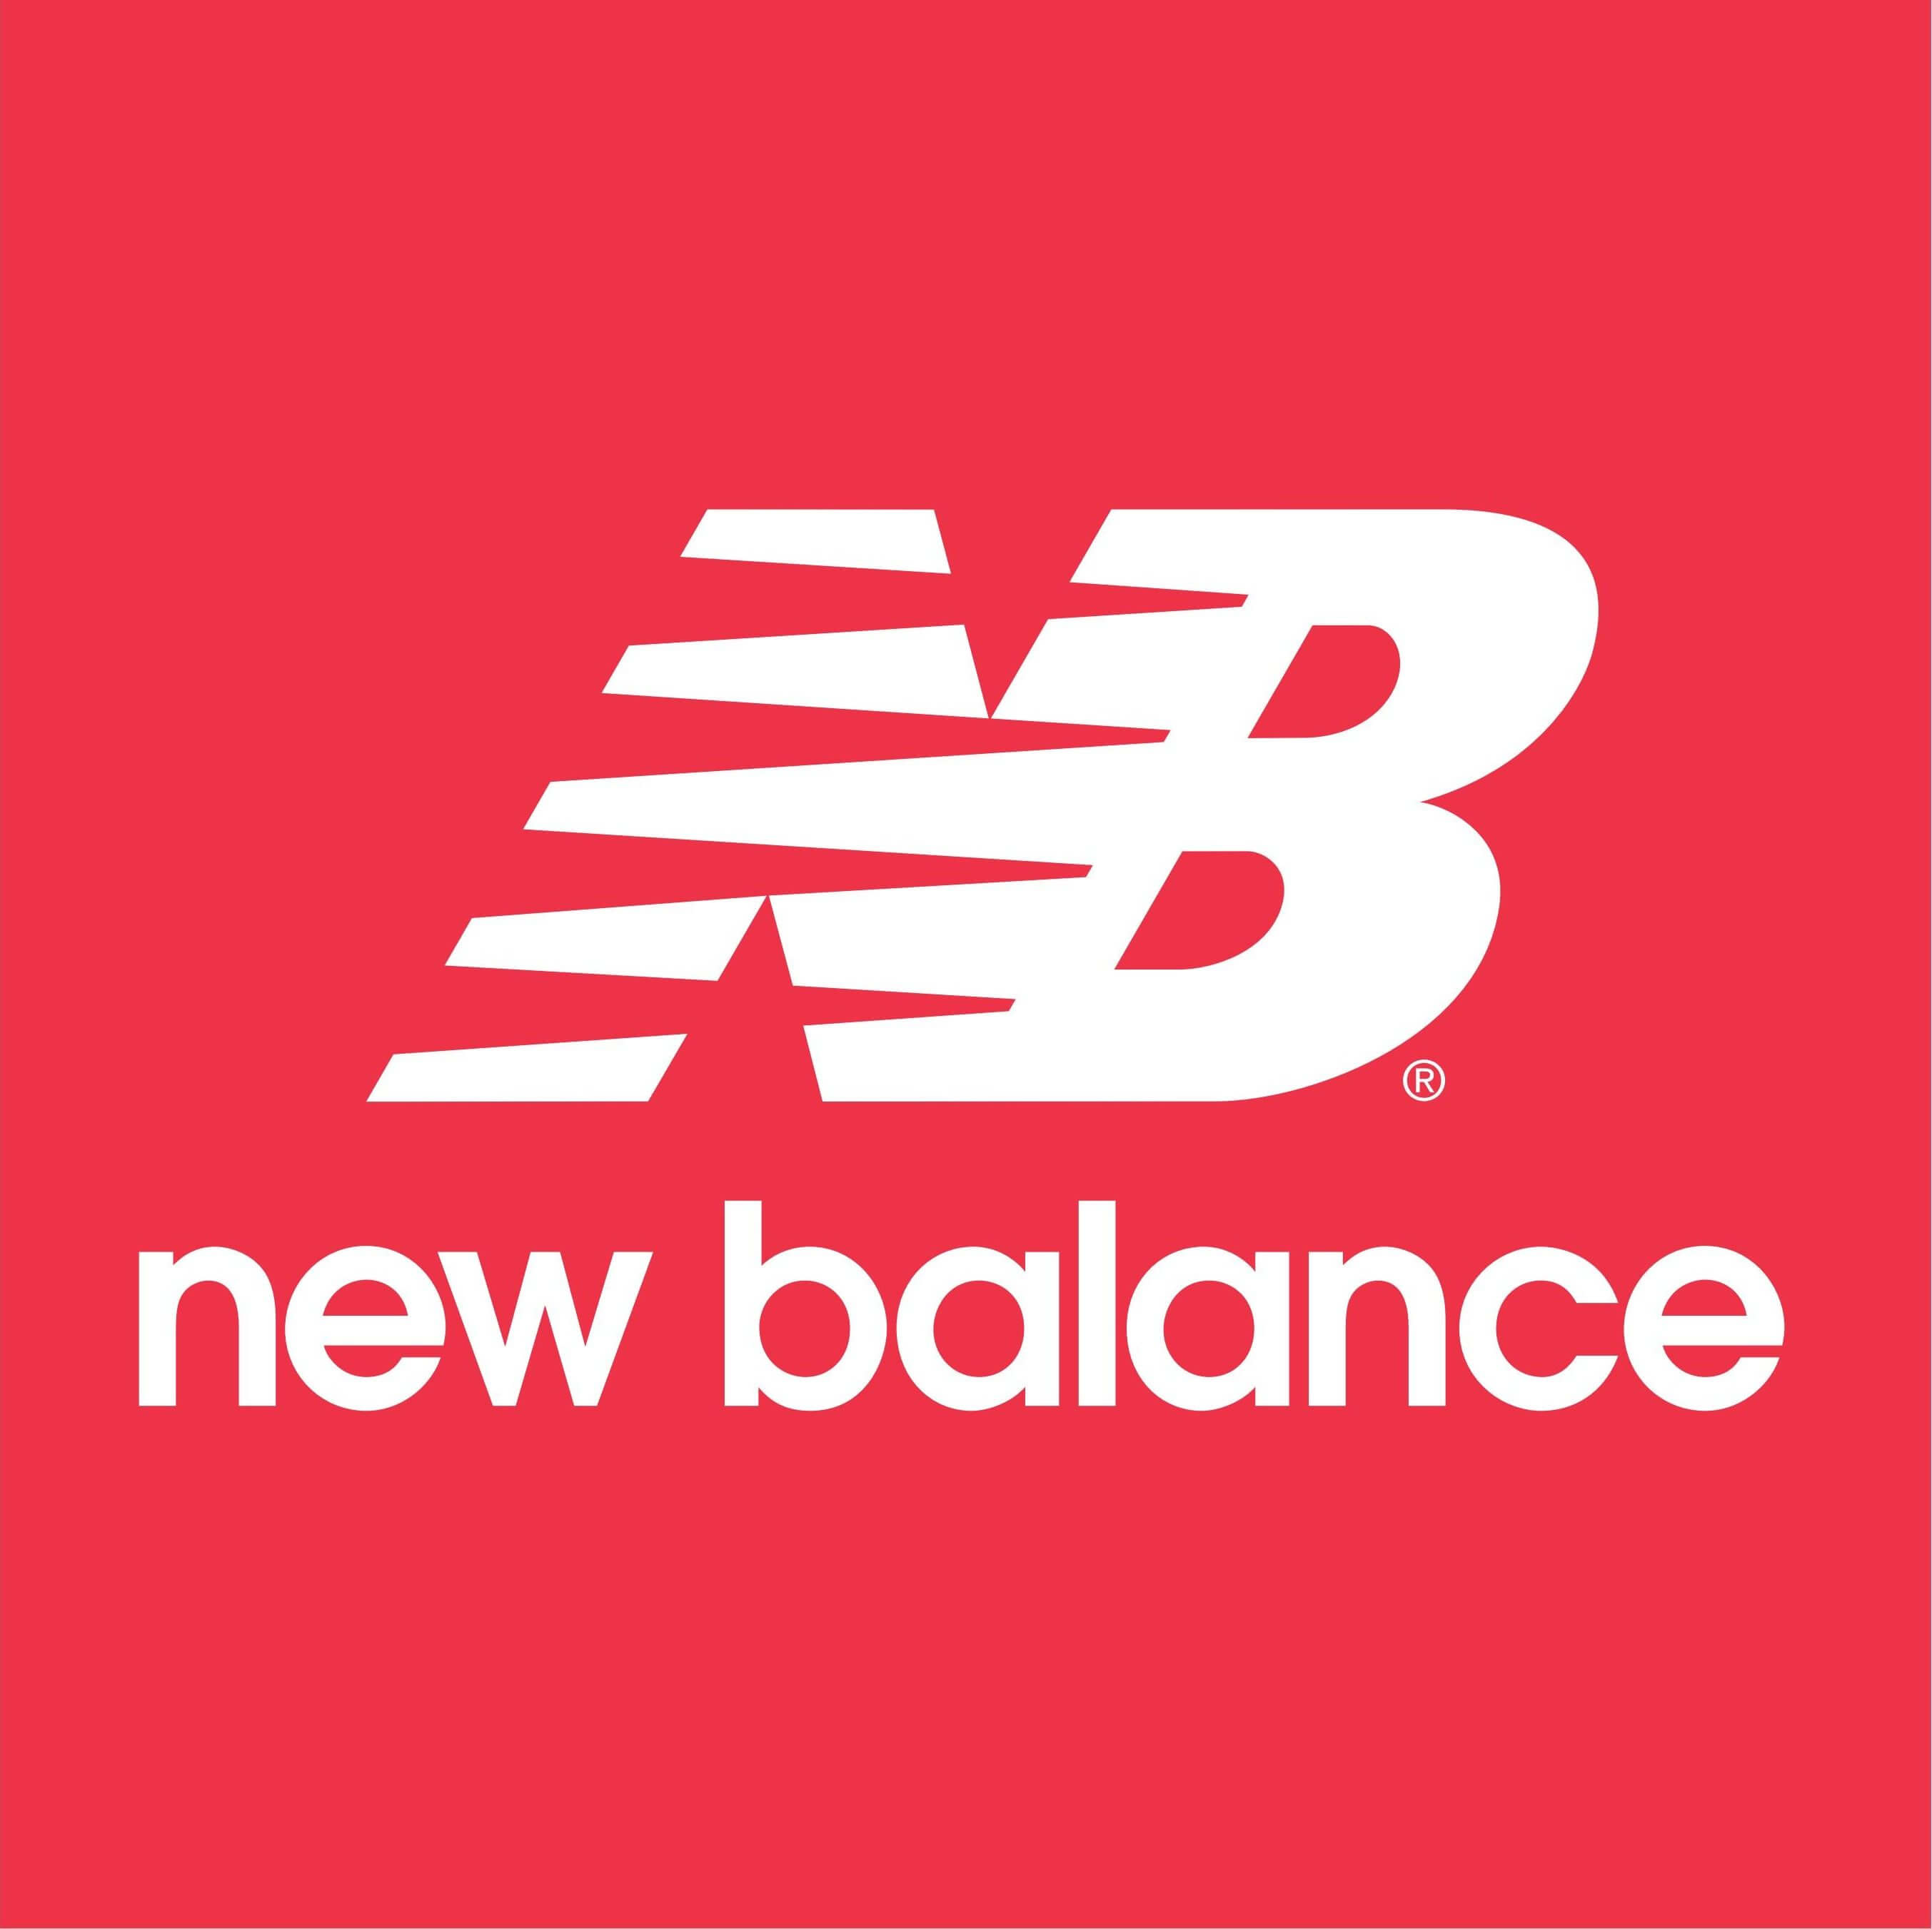 Differentiates New Balance product Case Study